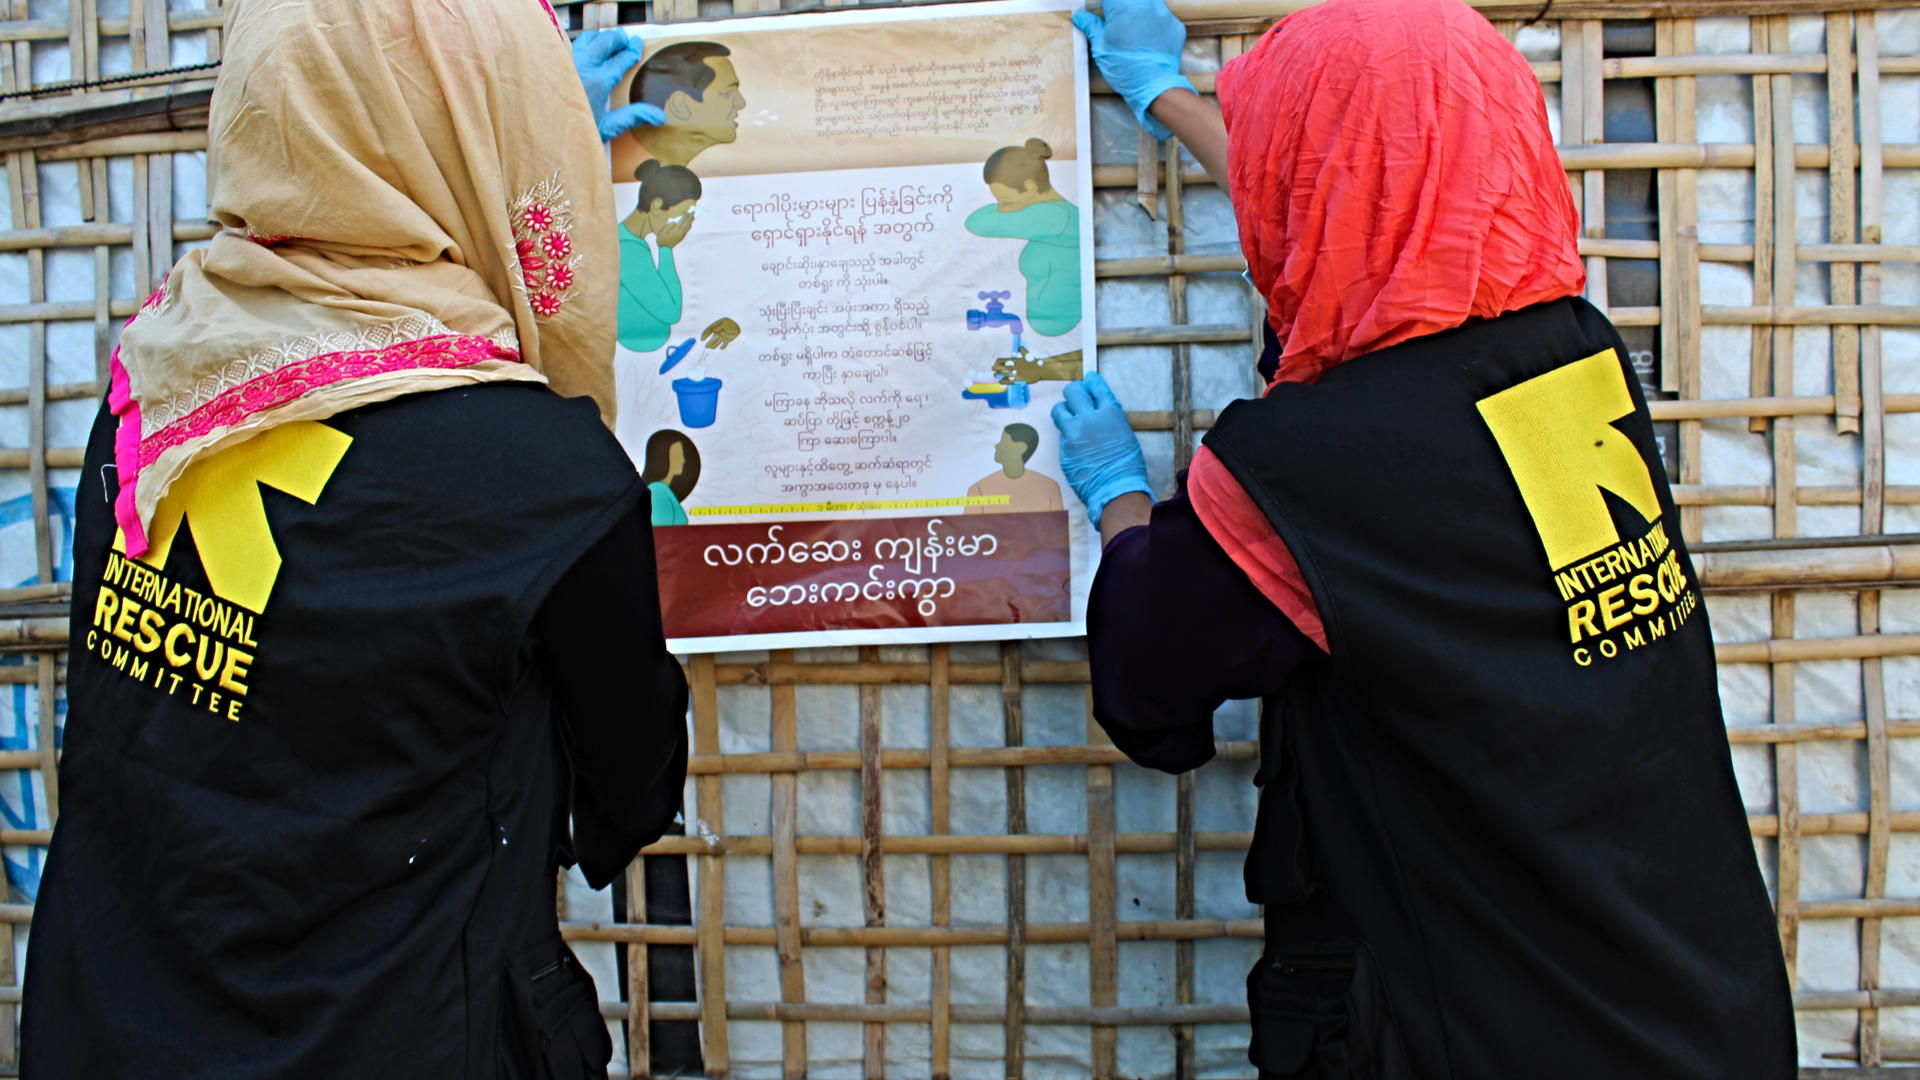 Two women post coronavirus information on the wall of a bamboo shelter in their roles as IRC Community health workers